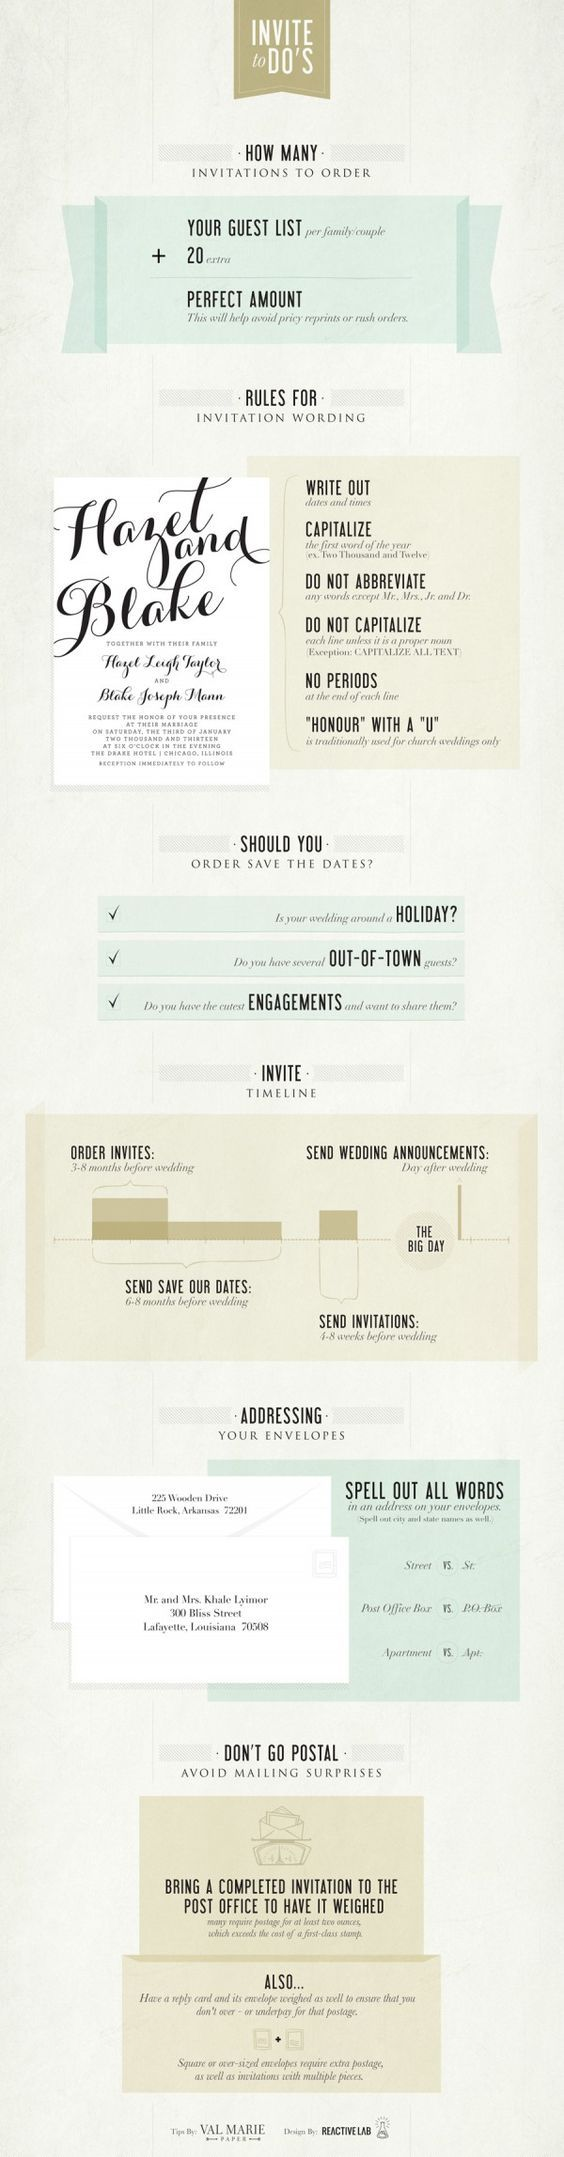 sister marriage invitation letter format%0A Invite to dos  All you need to know about wedding invitations in one  infographic